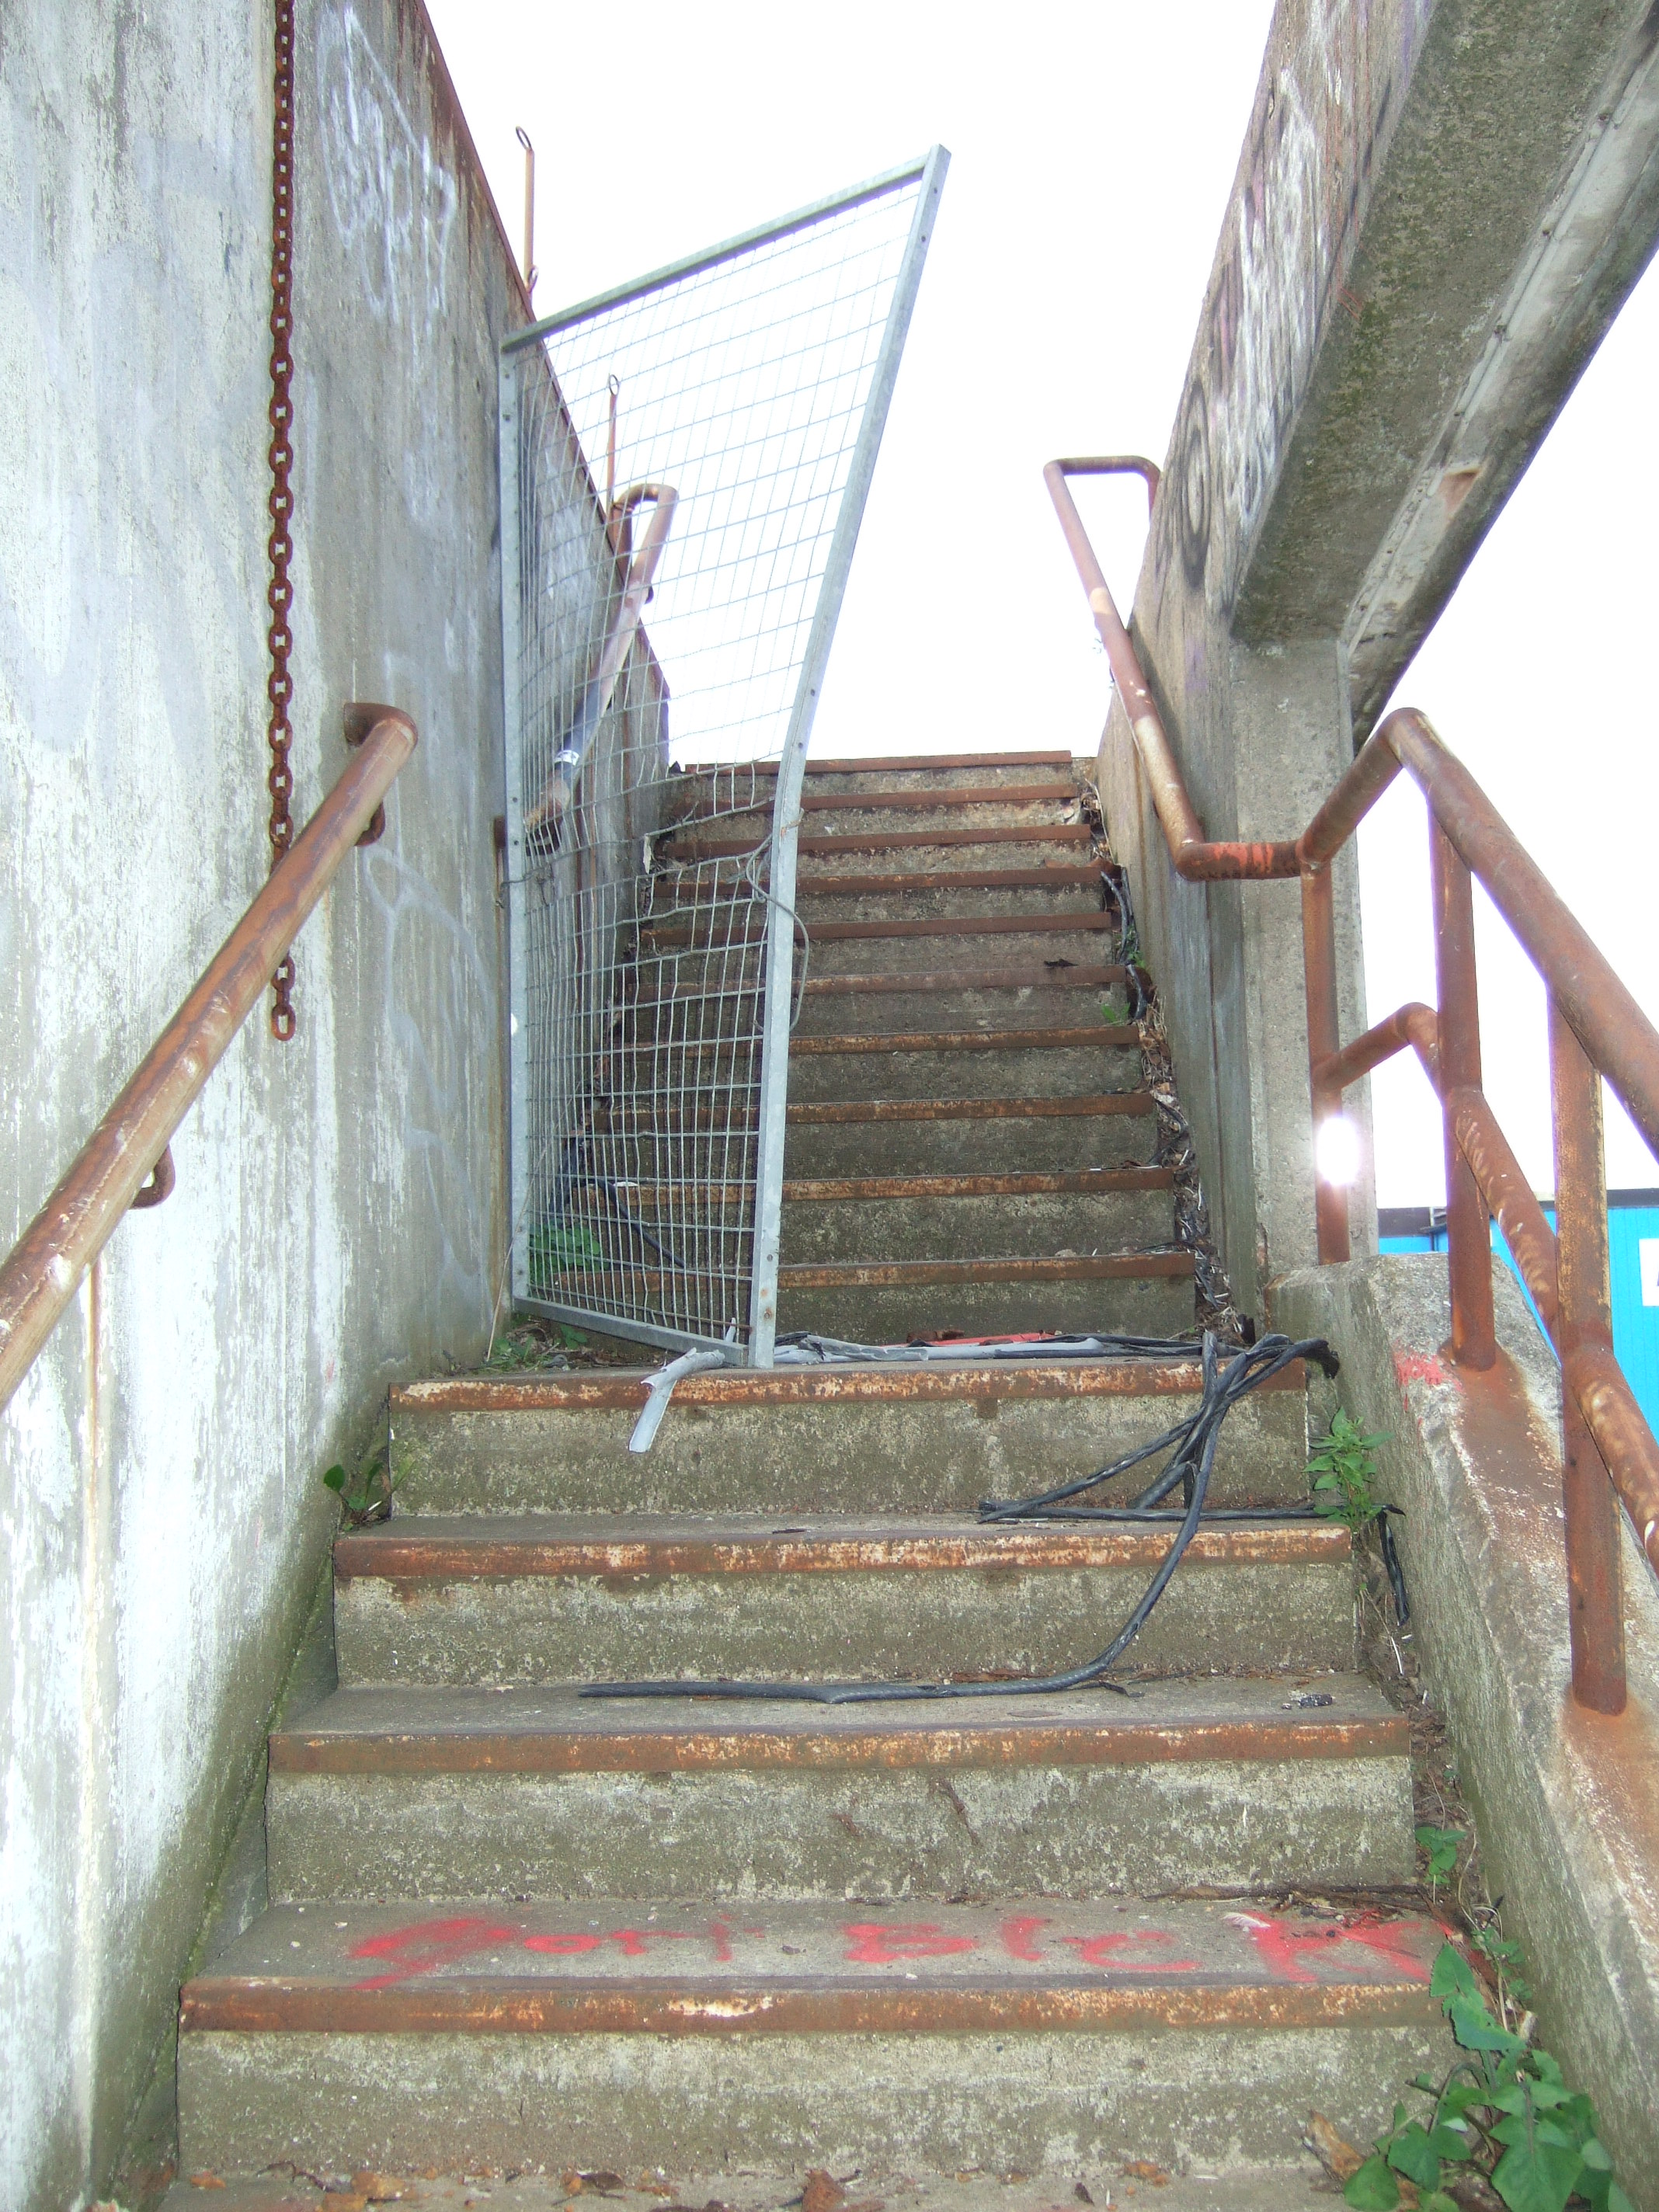 tabus abandoned stair way steps fence